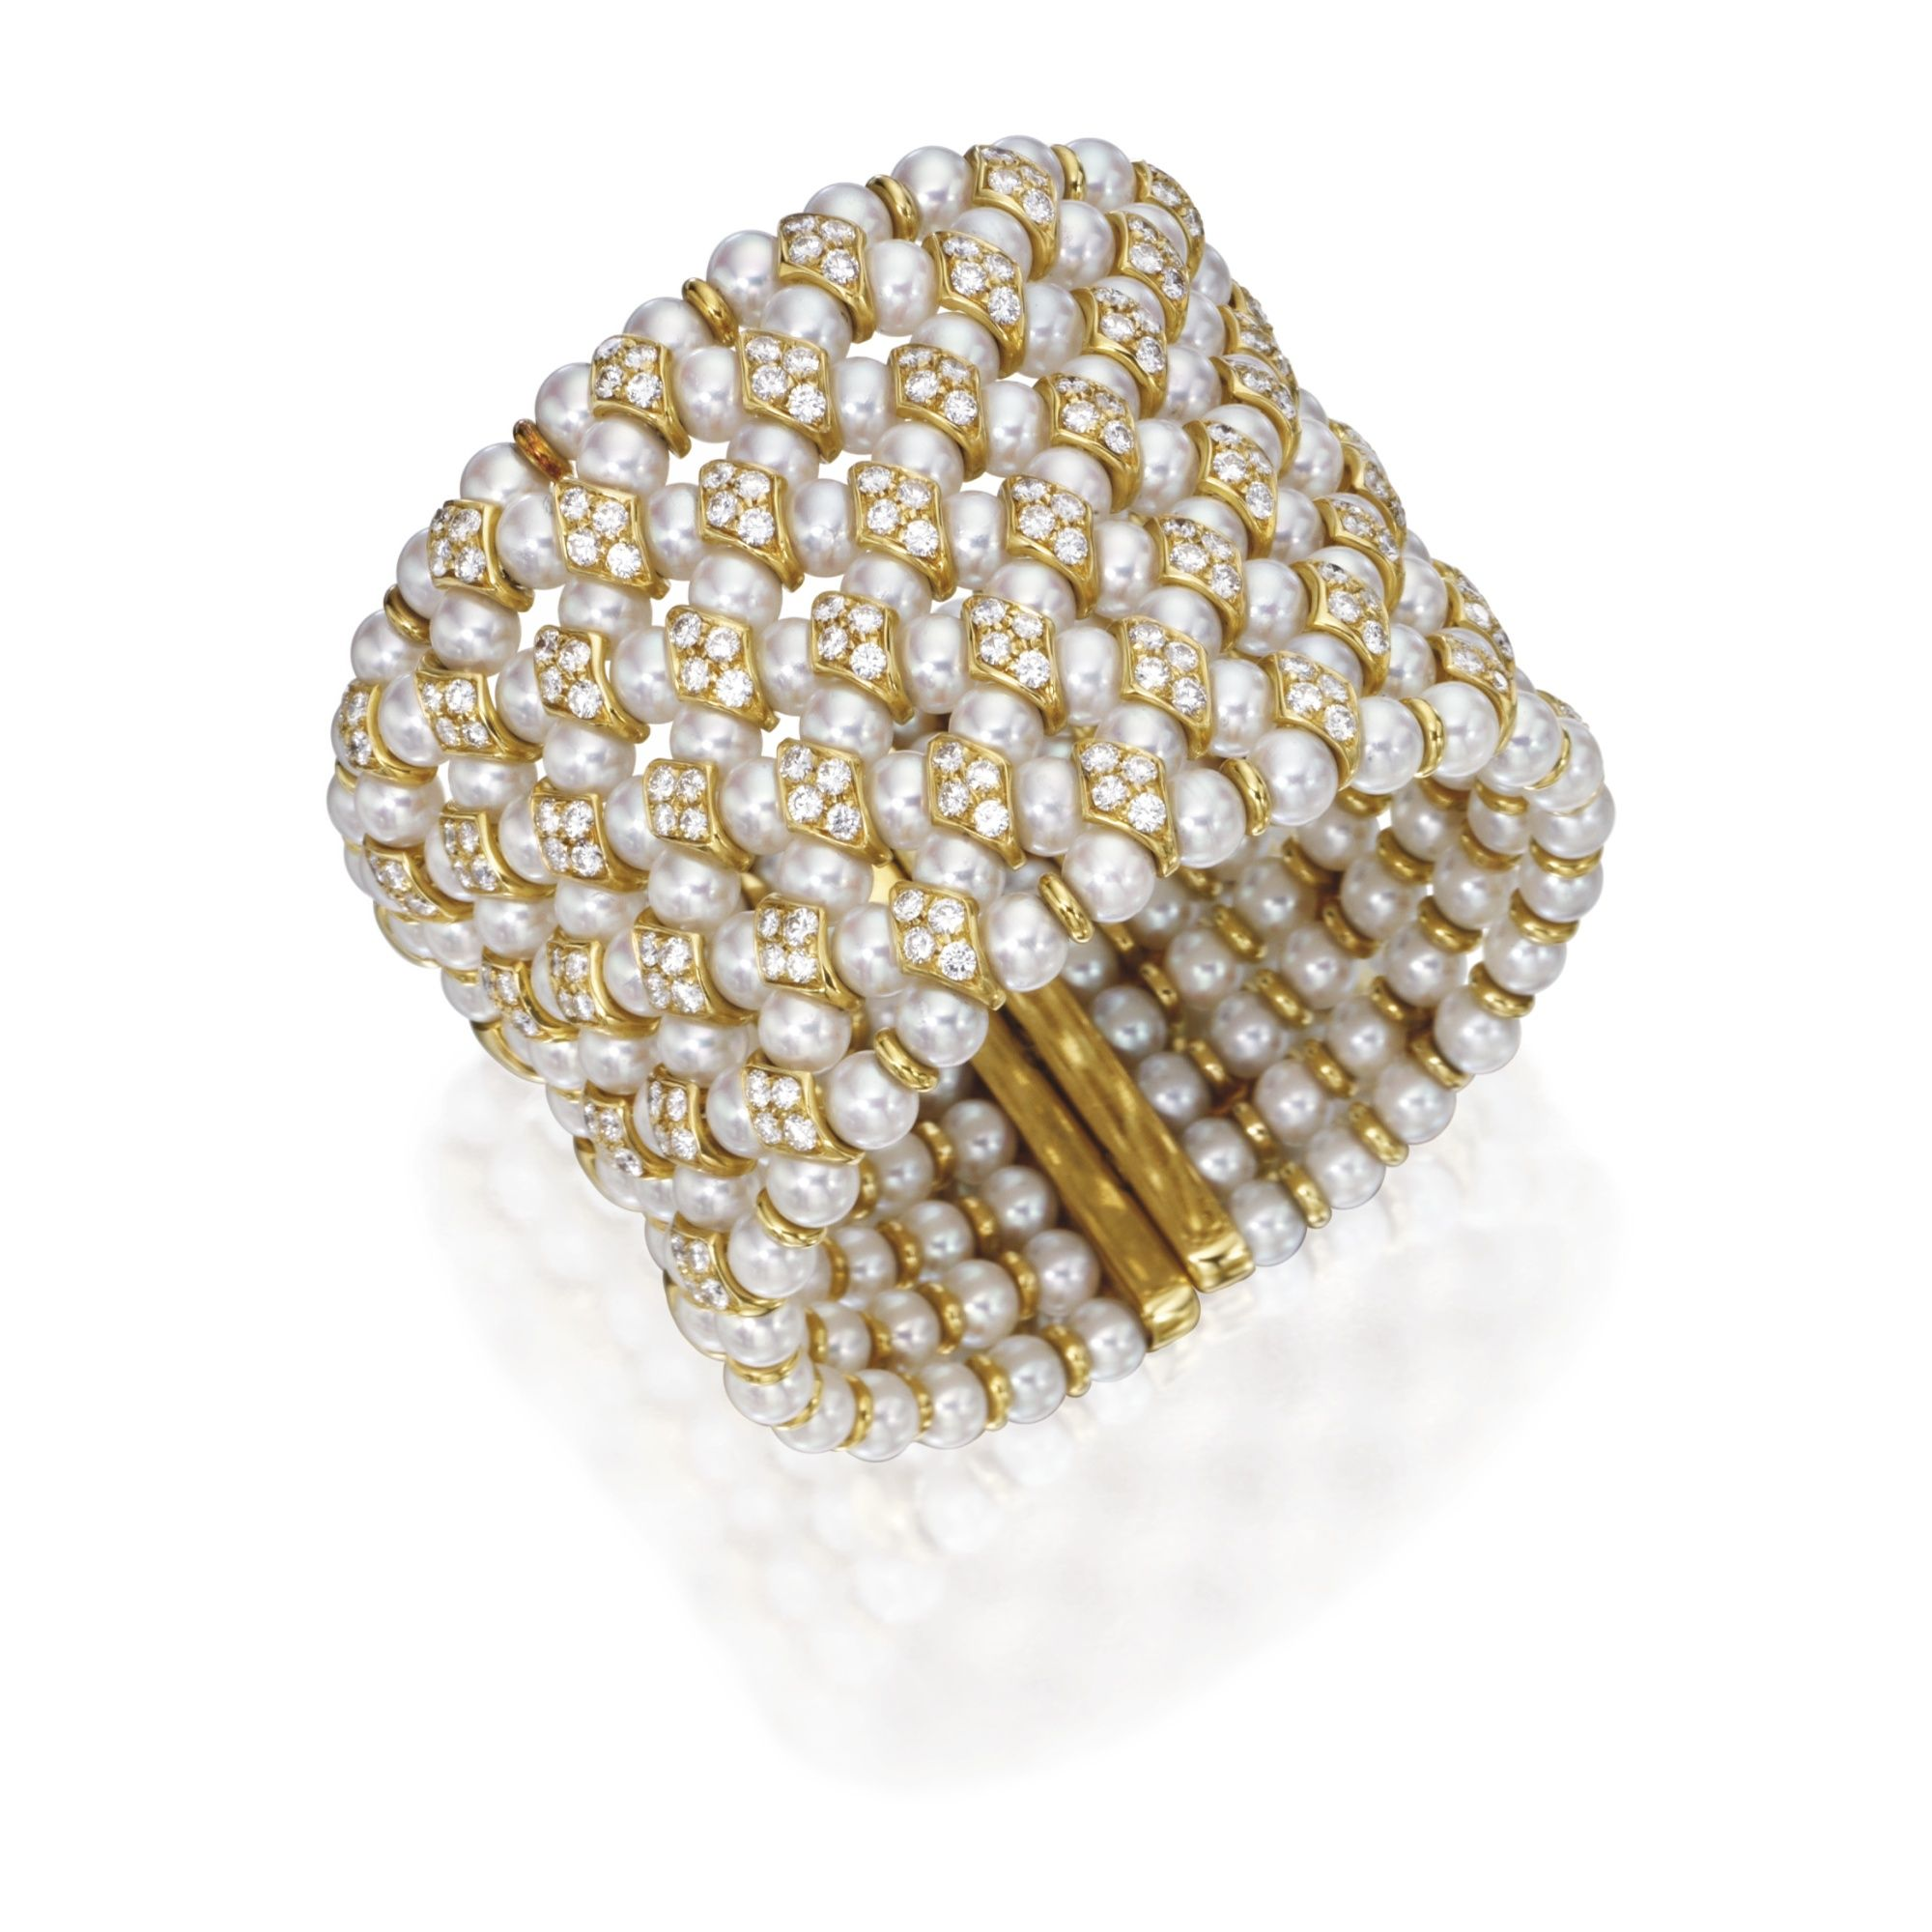 18 KARAT GOLD, DIAMOND AND CULTURED PEARL CUFF BRACELET Composed of nine rows of cultured pearls measuring approximately 6.0 to 5.5 mm., set throughout with round diamonds weighing approximately 8.30 carats